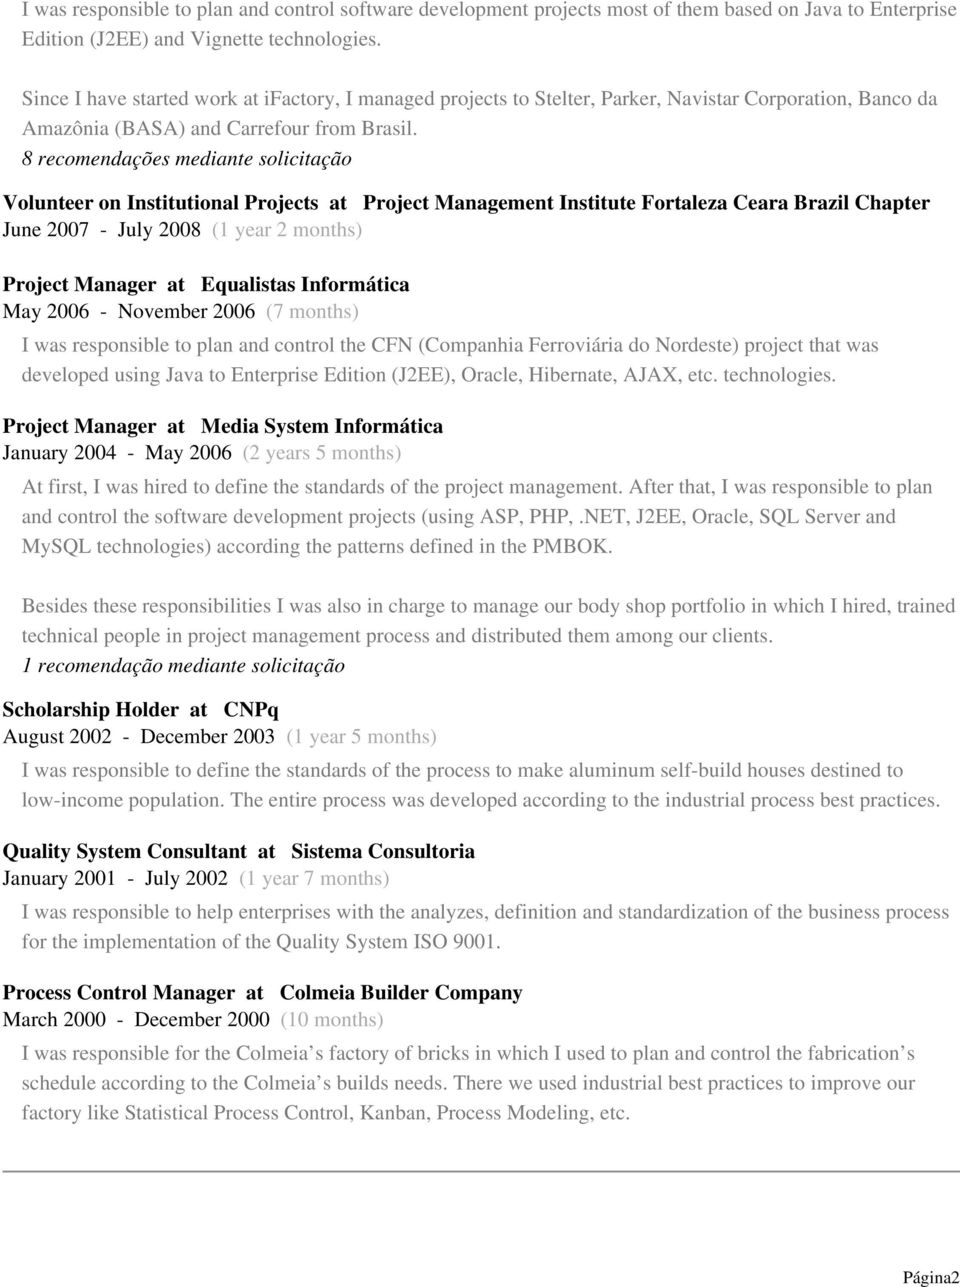 8 recomendações mediante solicitação Volunteer on Institutional Projects at Project Management Institute Fortaleza Ceara Brazil Chapter June 2007 - July 2008 (1 year 2 months) Project Manager at